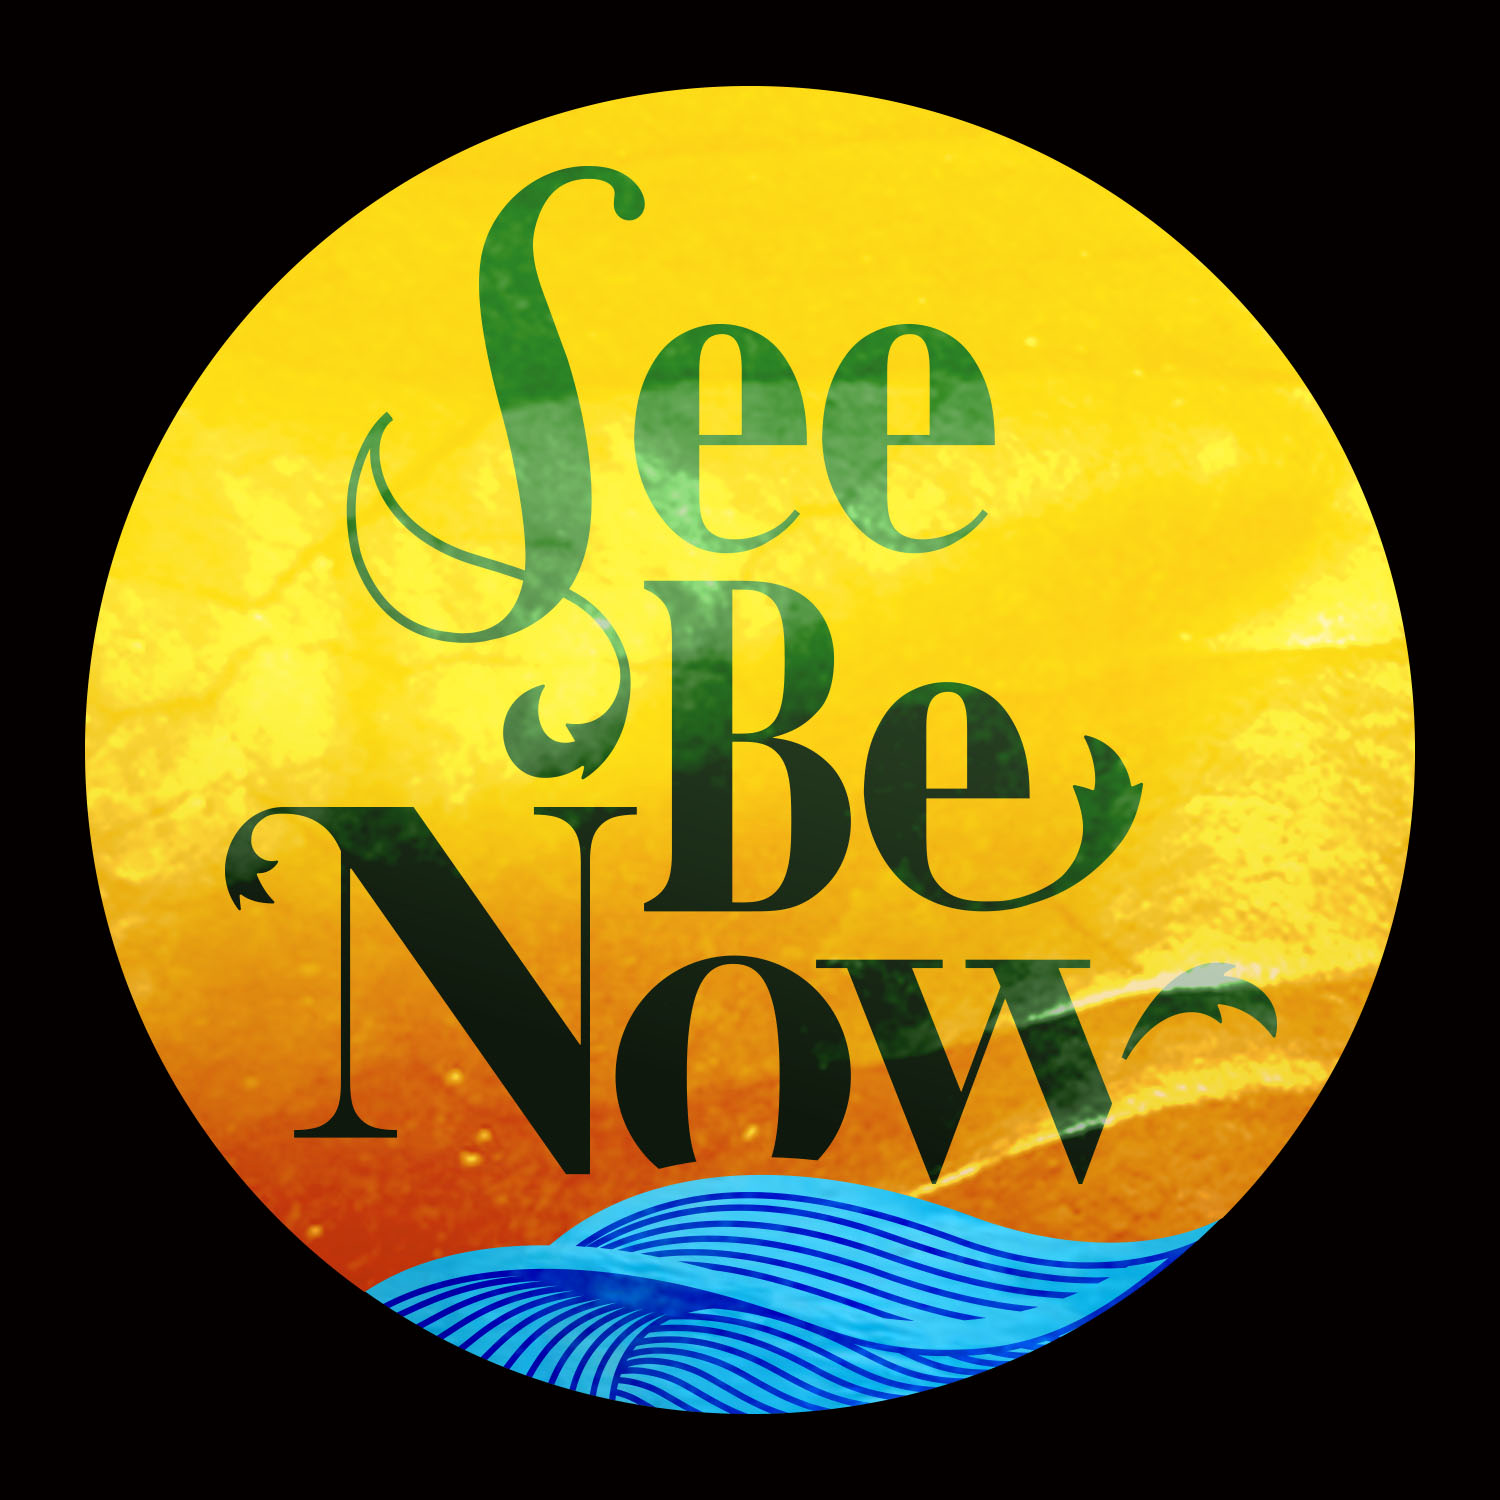 See Be Now